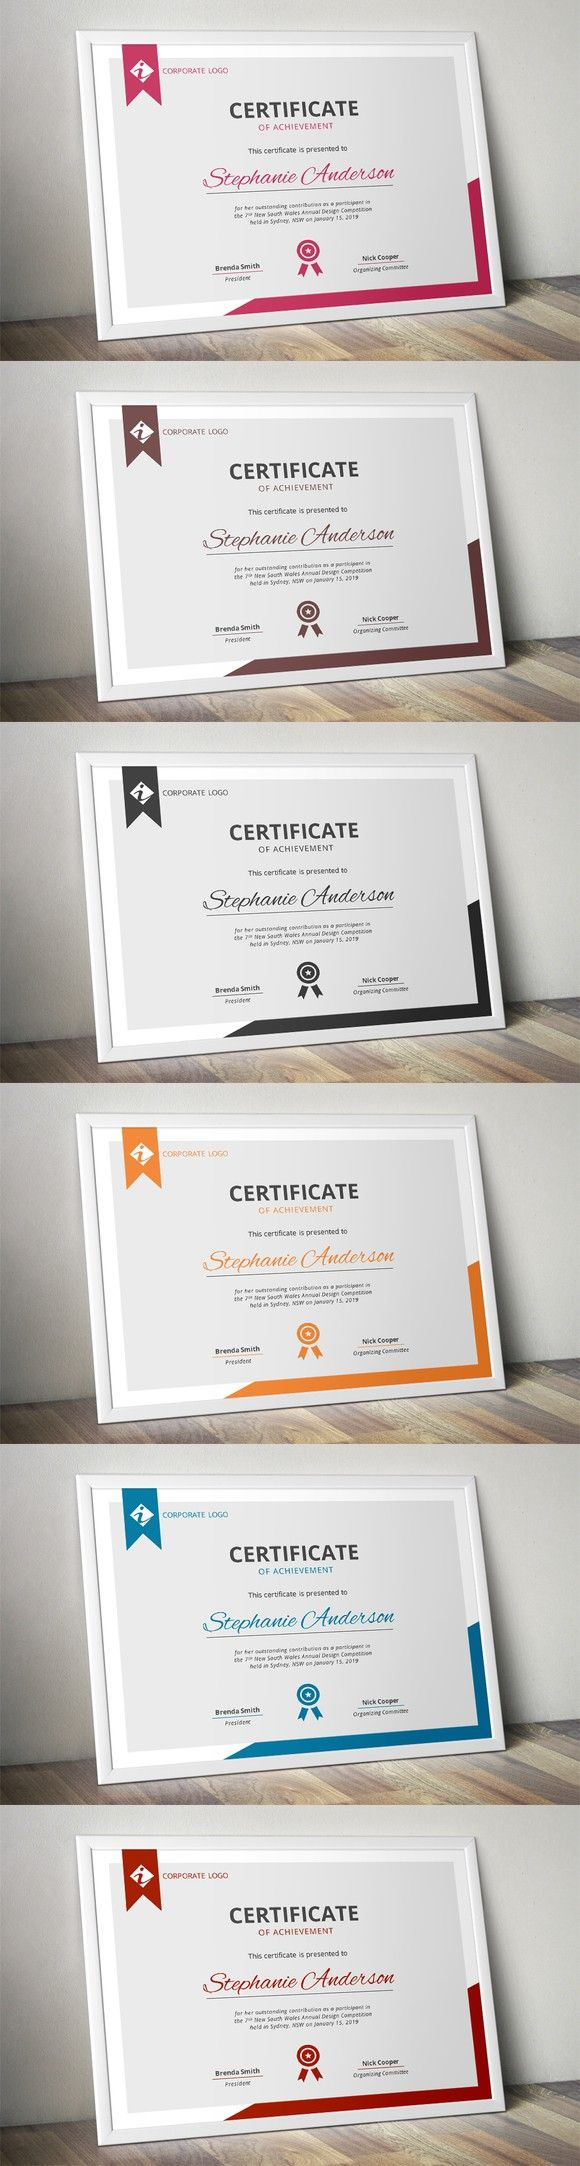 Modern MS Word certificate template | certificate design | Pinterest ...